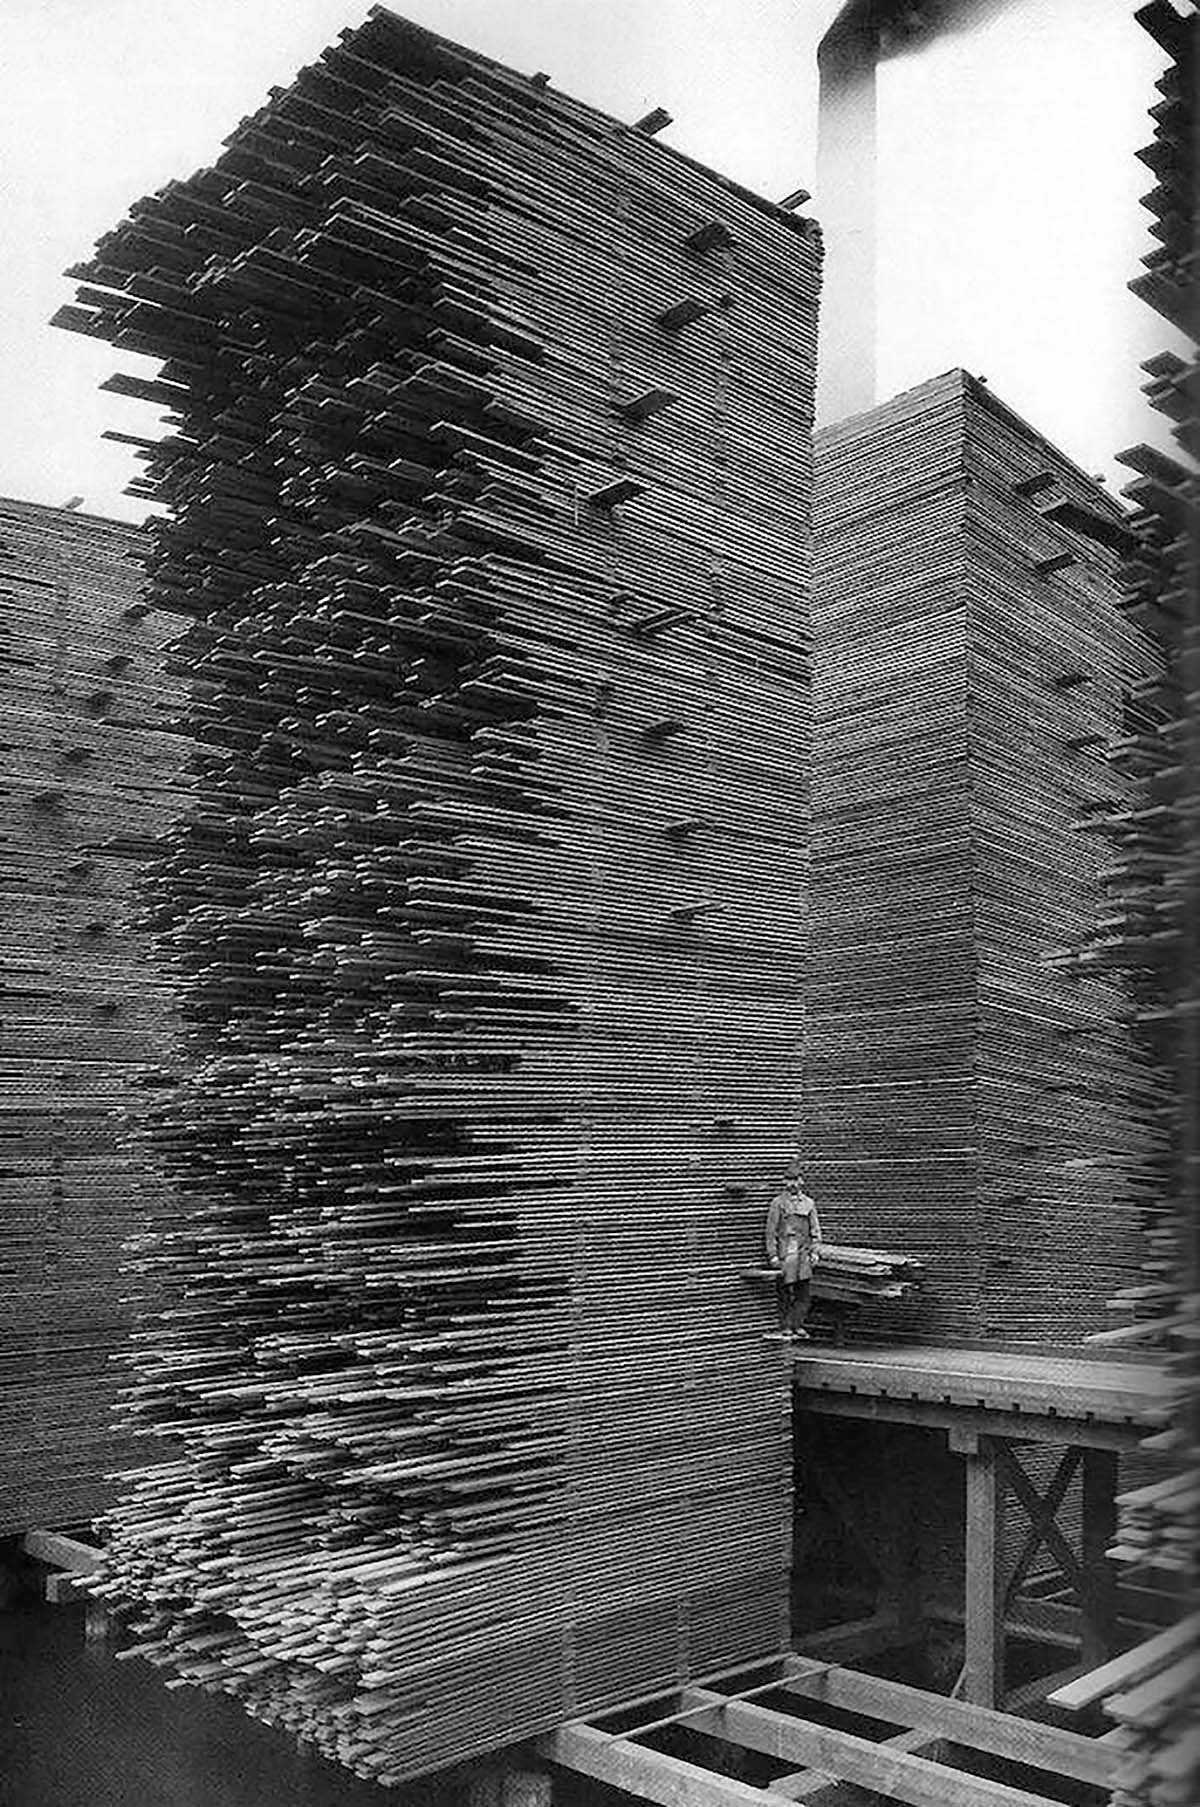 Stacks of lumber, Seattle Cedar Manufacturing Plant, Ballard, 1958, Photo by Webster & Stevens. Digital Collection: Museum of History & Industry Photograph Collection. Courtesy of the Pavilion of the United States at the 17th International Architecture Exhibition – La Biennale di Venezia